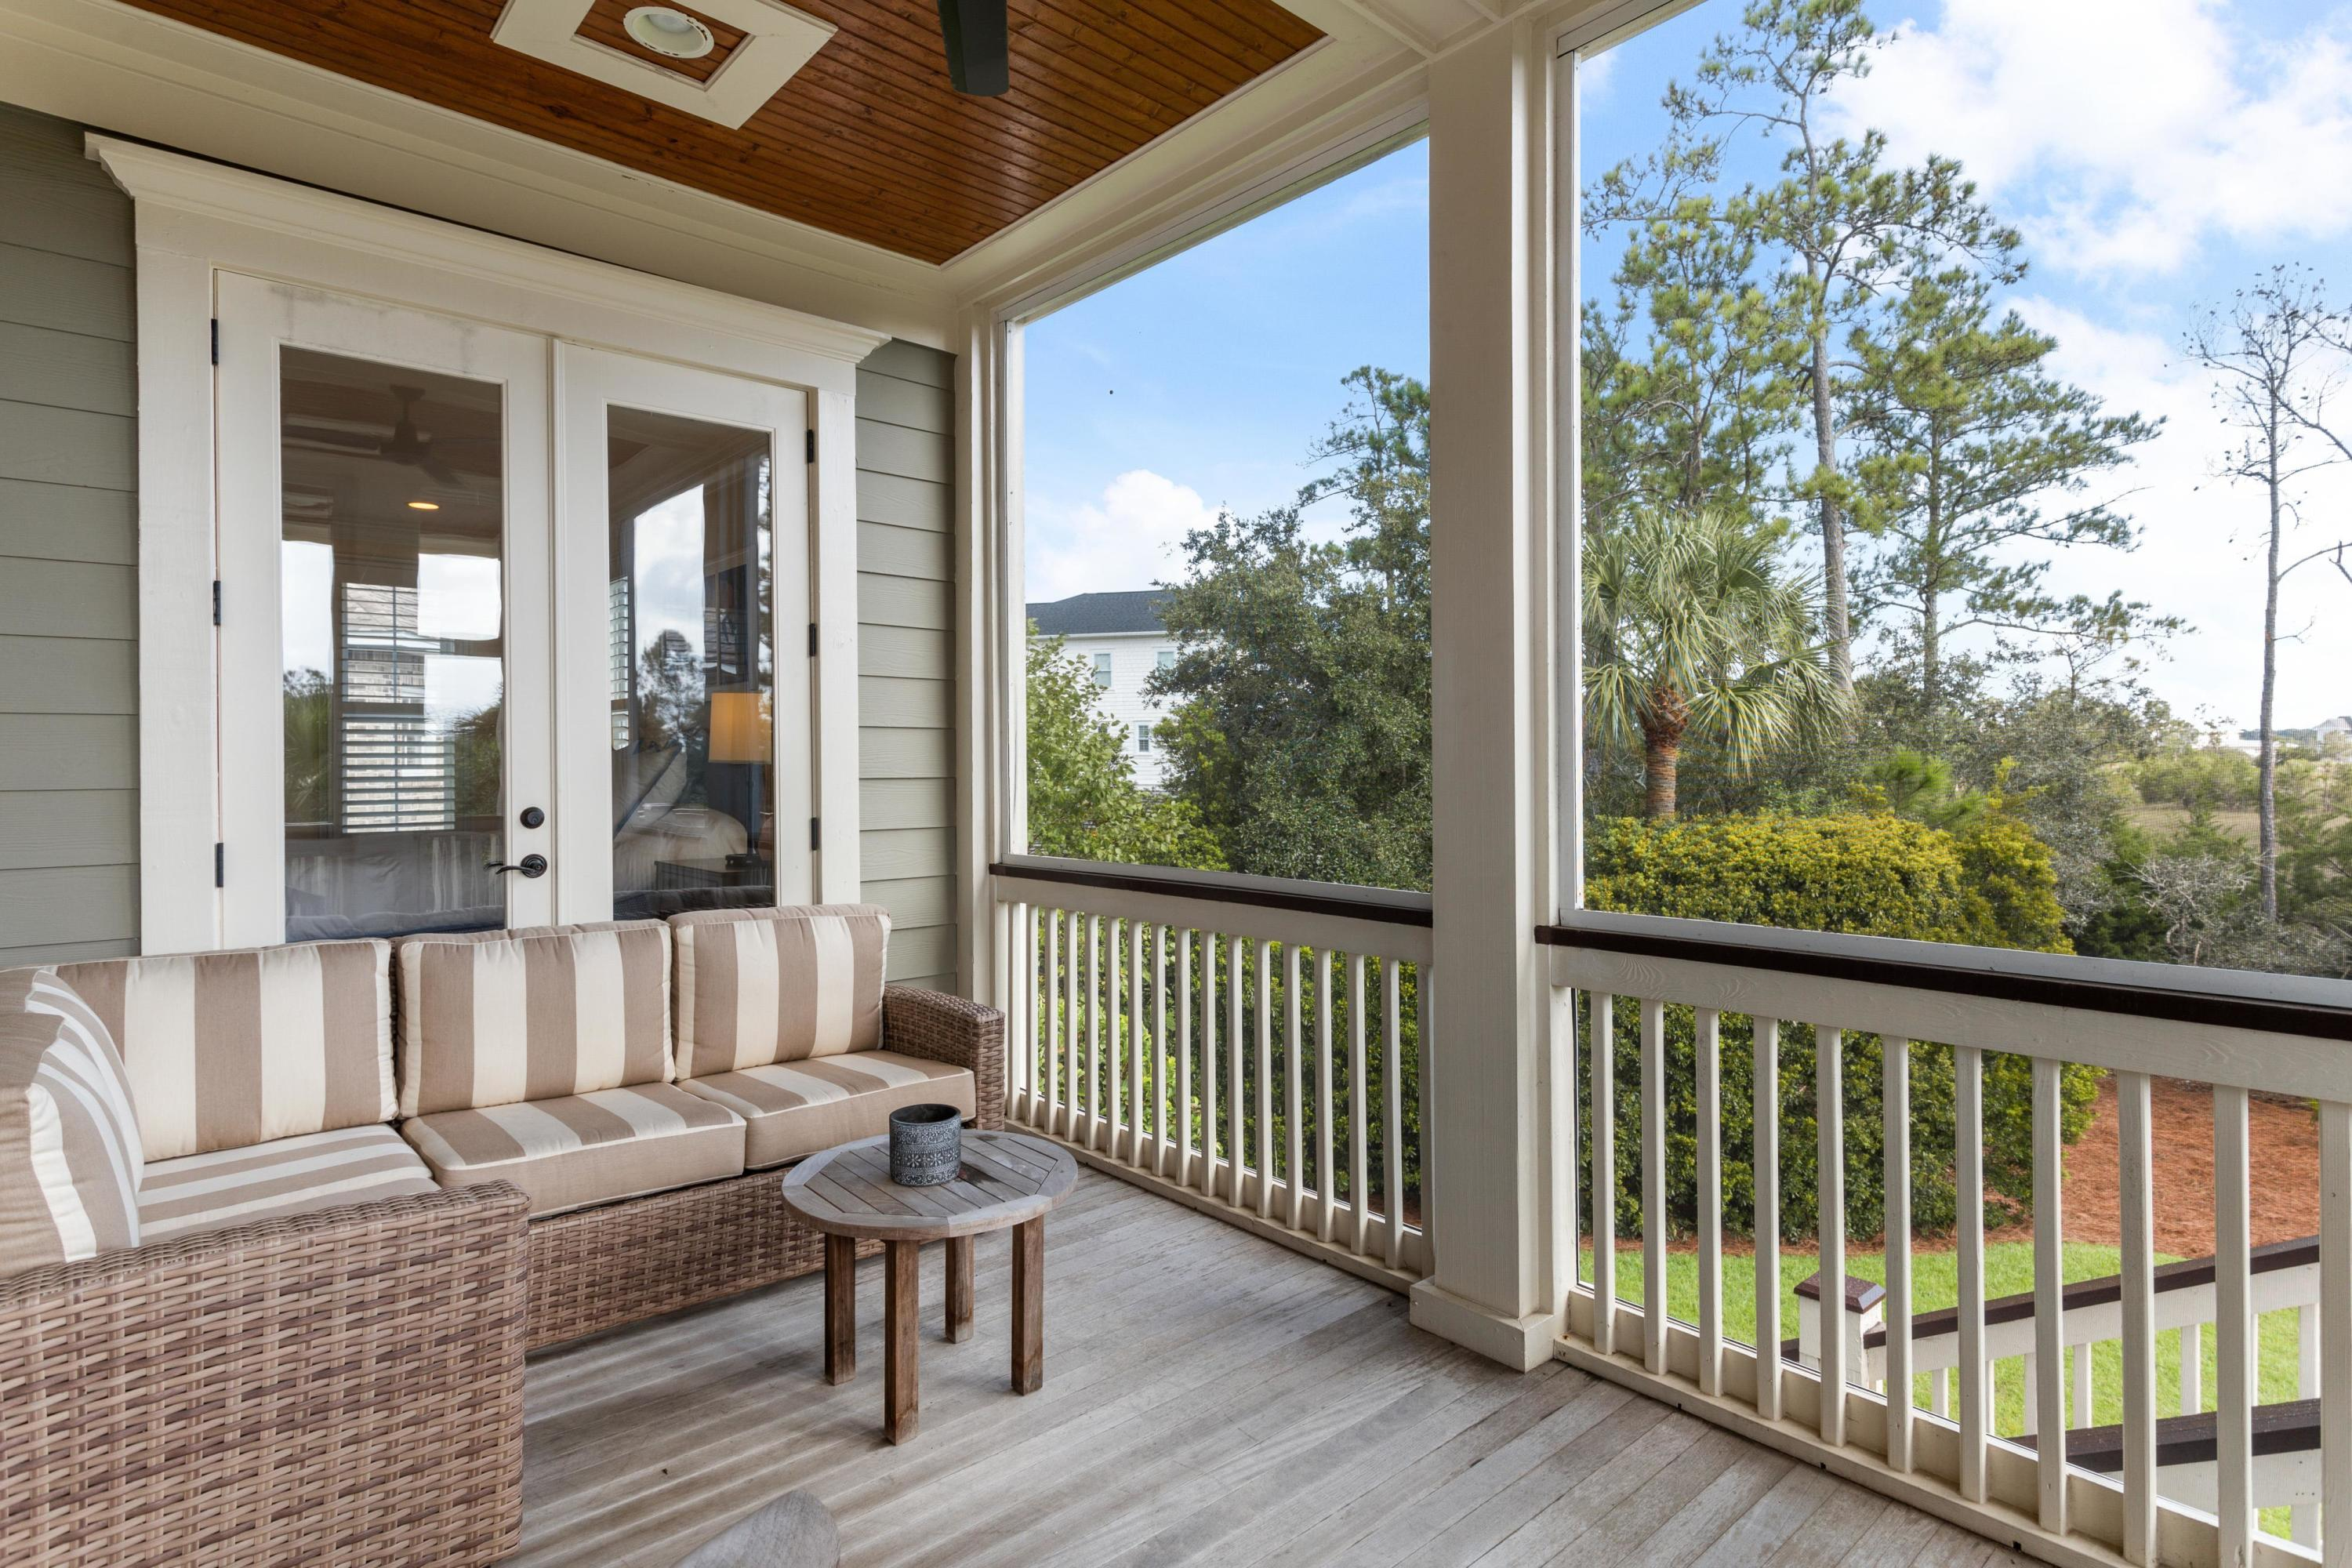 Rivertowne Country Club Homes For Sale - 2725 Canebreak, Mount Pleasant, SC - 22